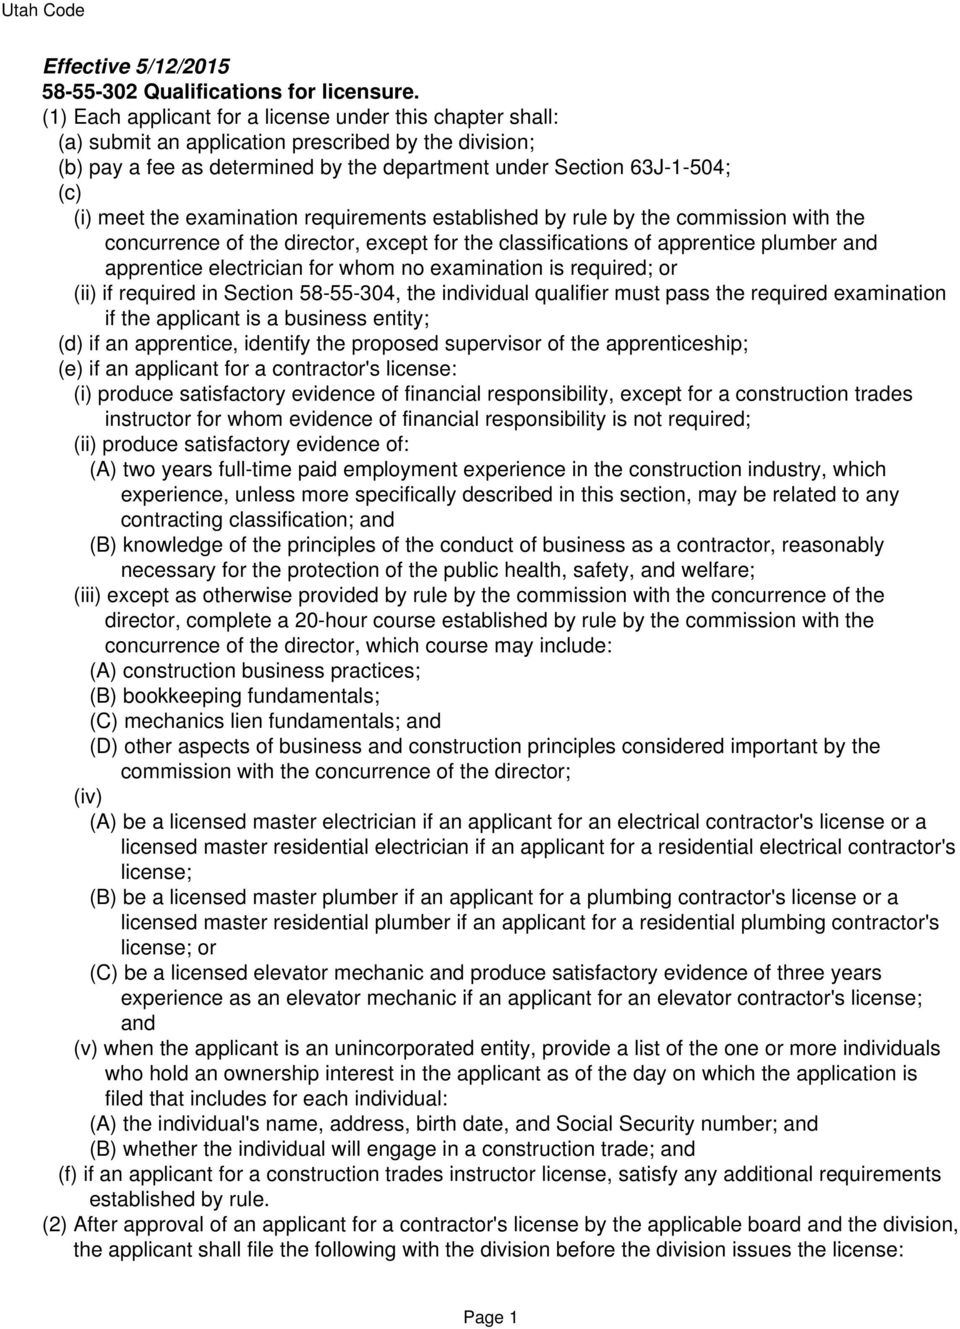 the examination requirements established by rule by the commission with the concurrence of the director, except for the classifications of apprentice plumber and apprentice electrician for whom no